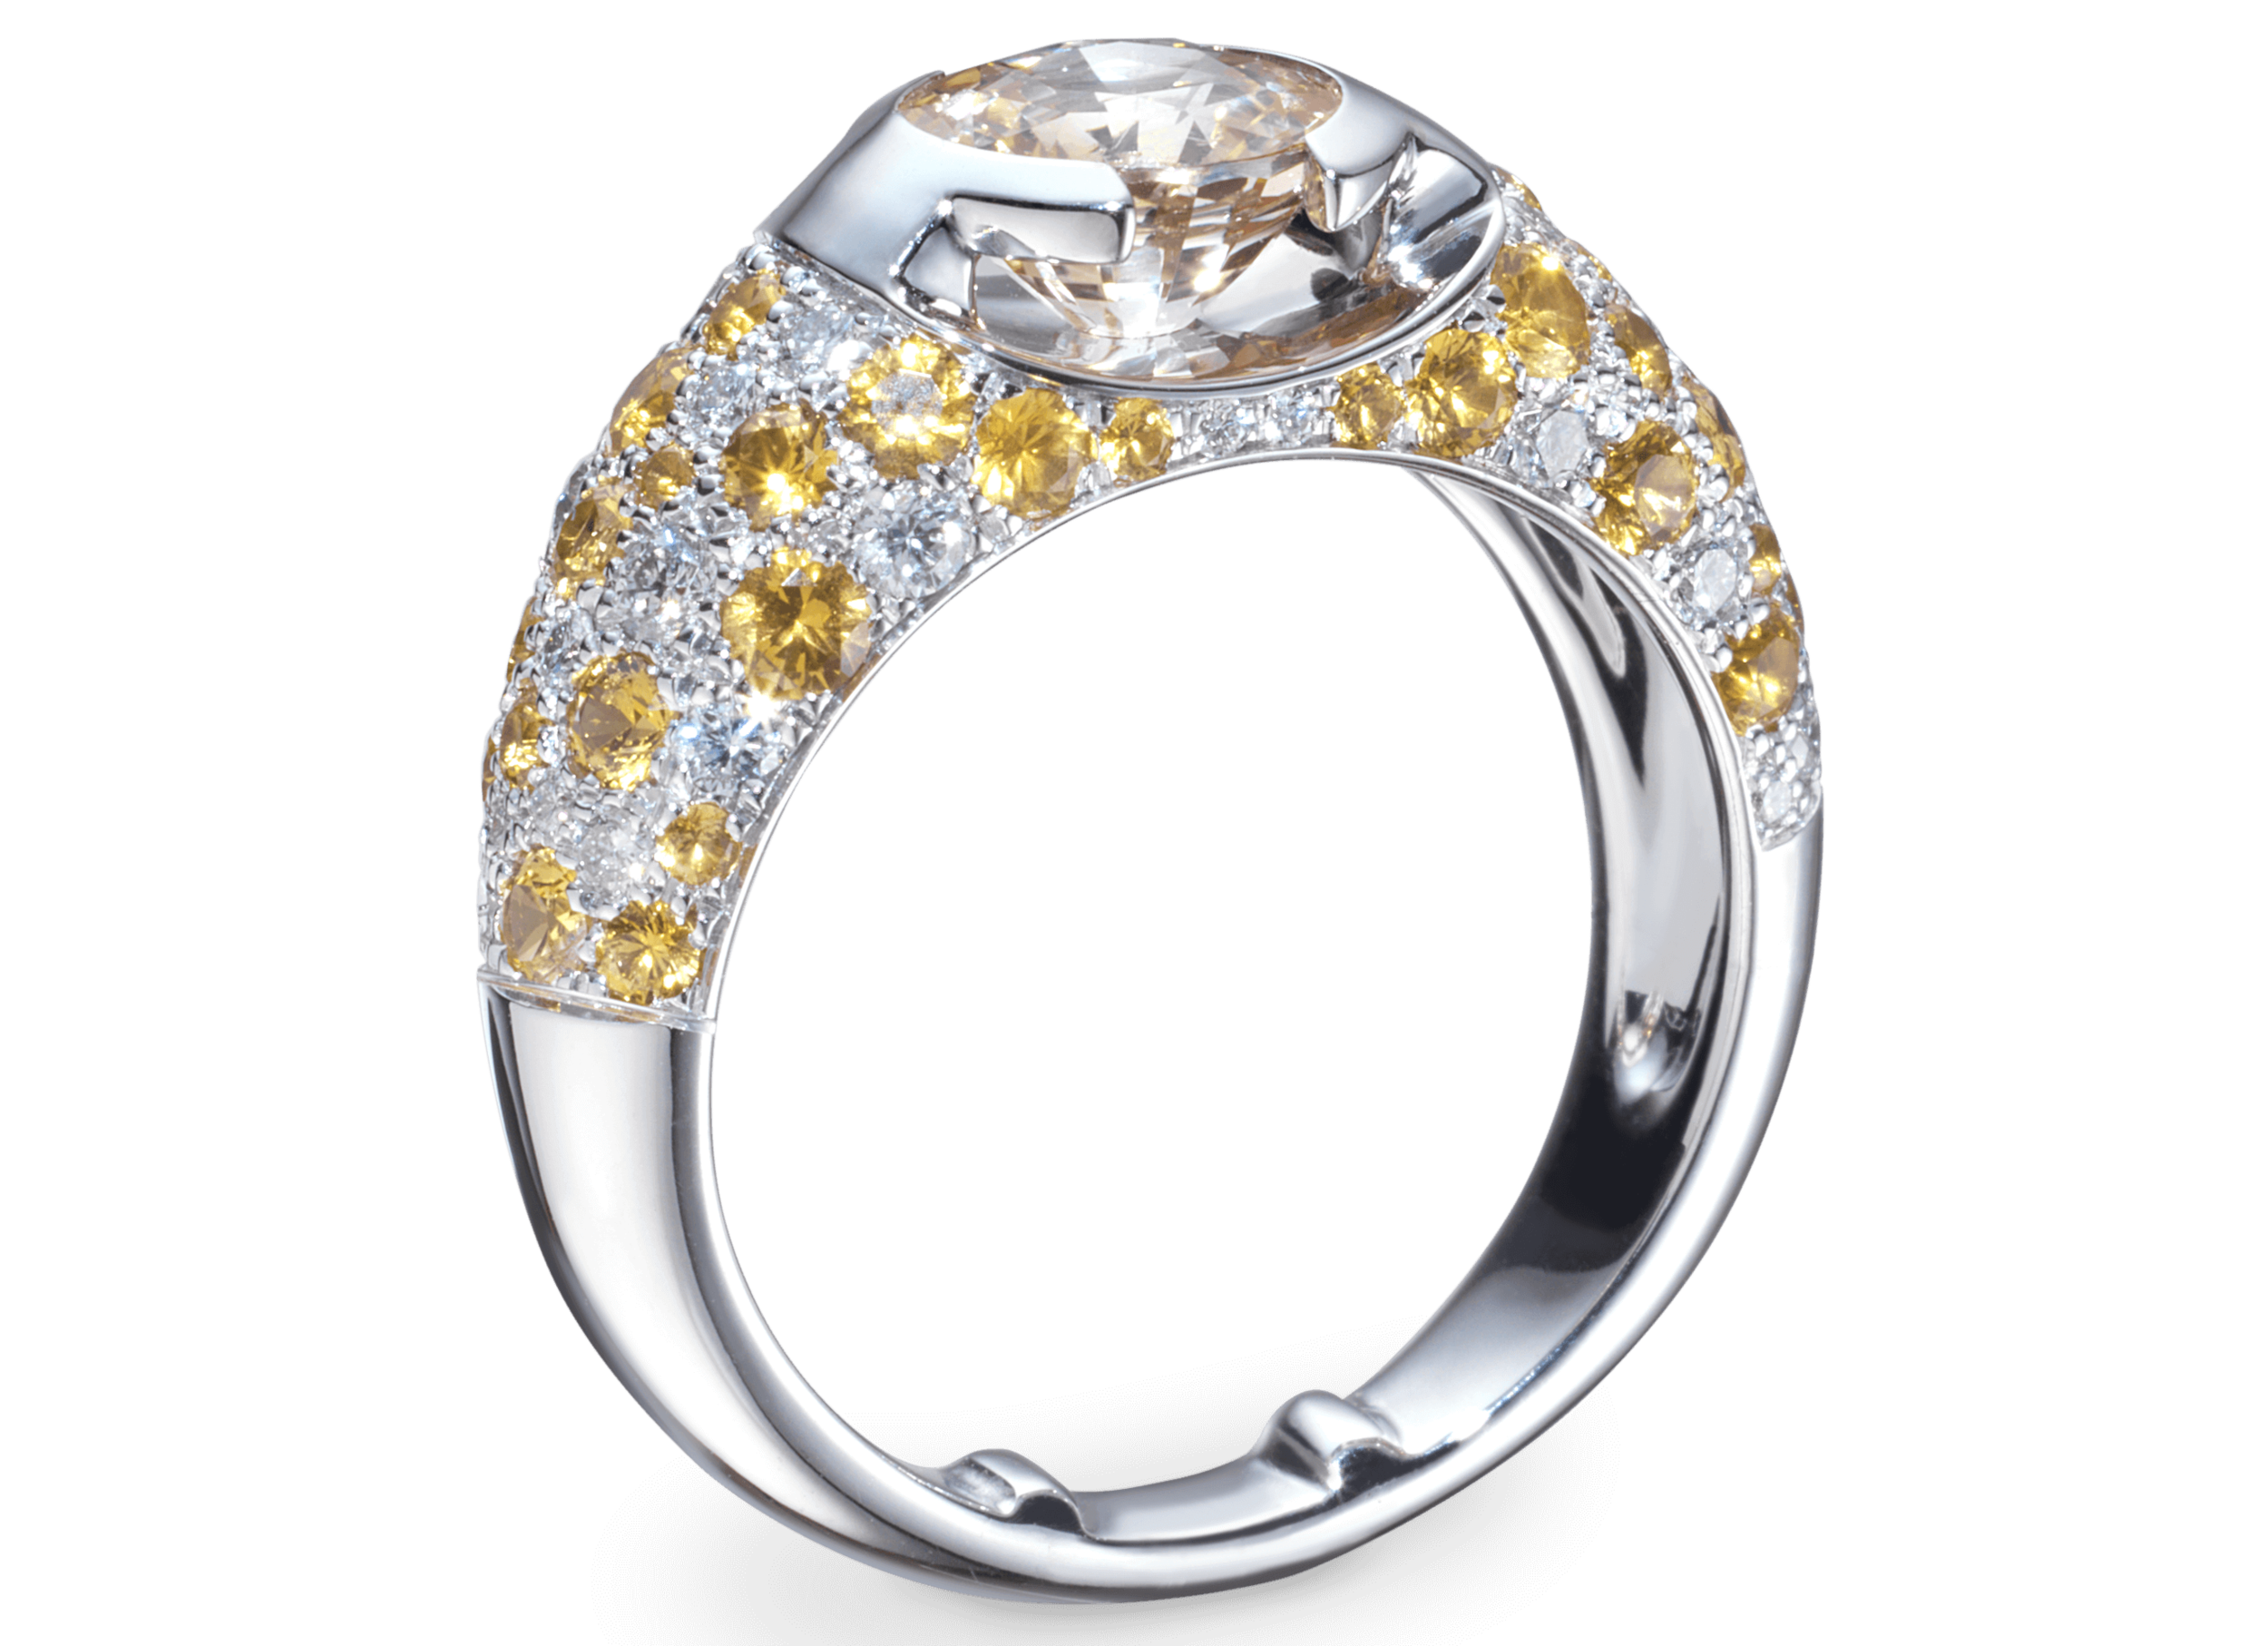 Bague Eolia or blanc Saphir jaune naturel 1,59 carat et pavage de diamants et saphirs jaune.png